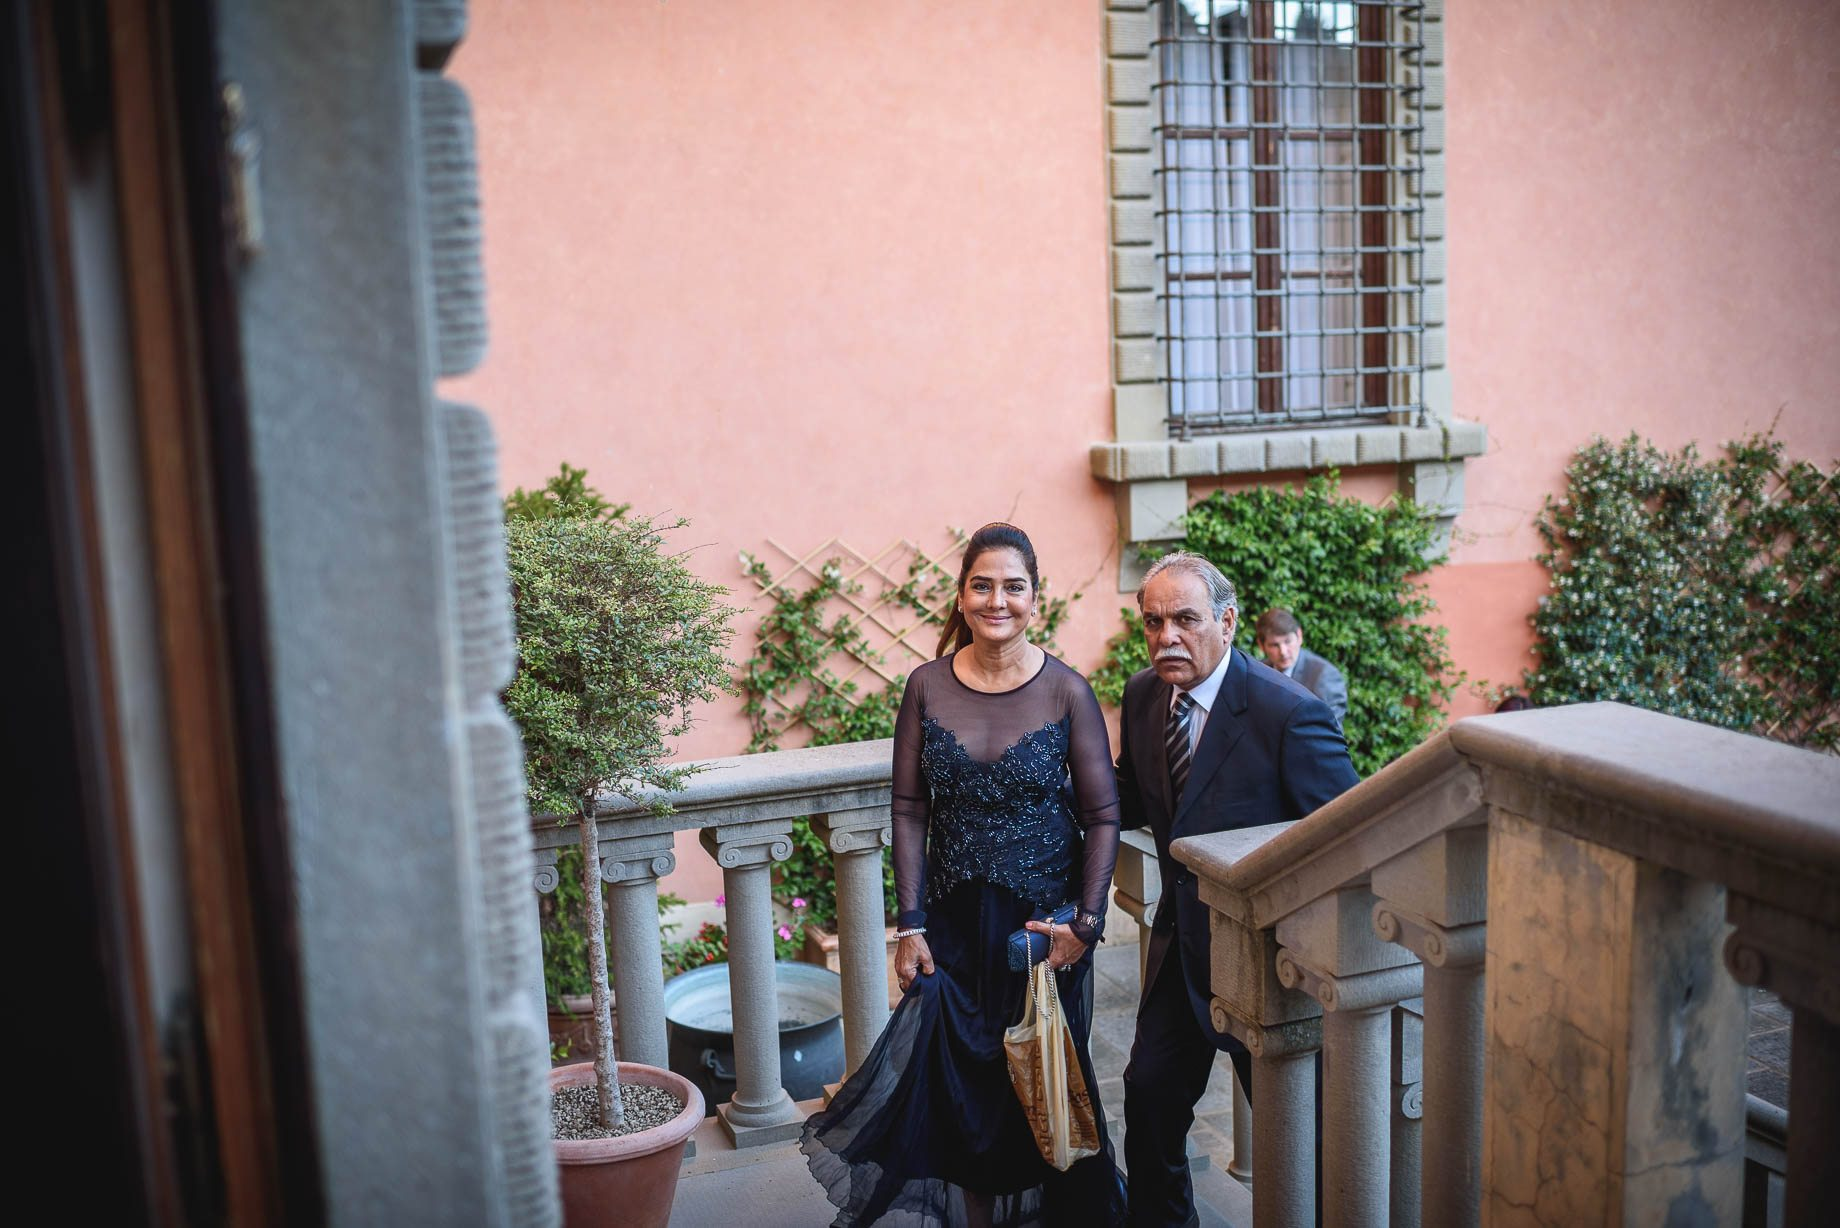 Tuscany wedding photography - Roisin and Moubin - Guy Collier Photography (139 of 194)